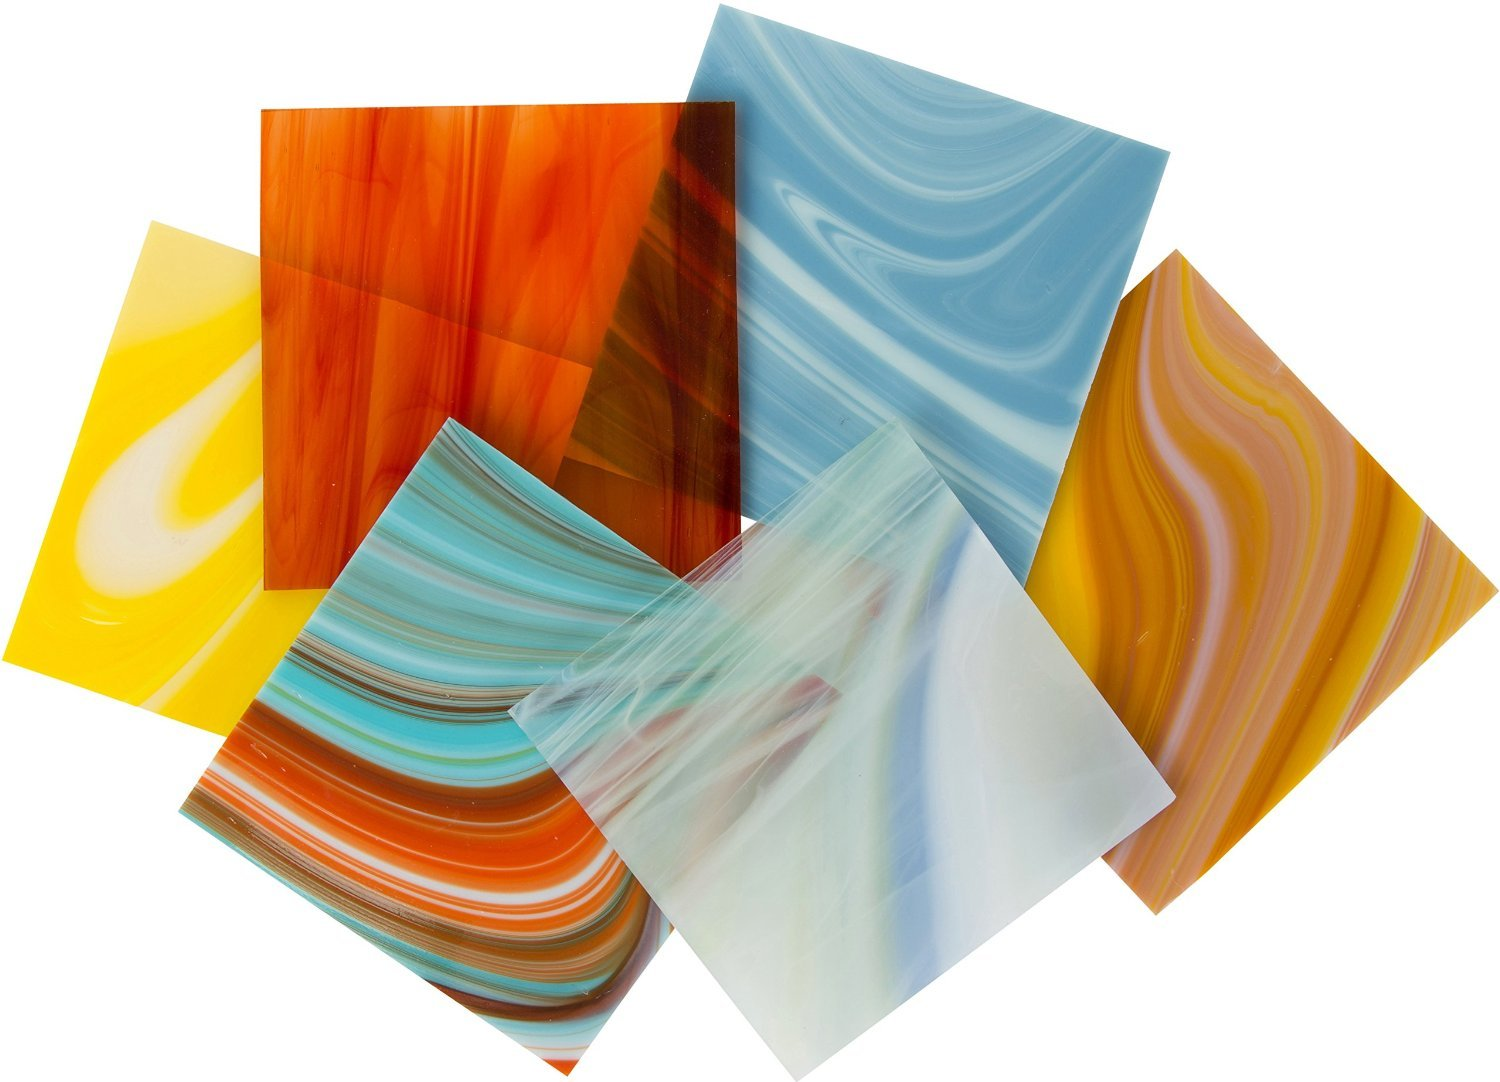 On Sale! COE 96 Deluxe System 96 Assorted Fusible Glass Pack - 4 X 4 Sheets - 6 Pack by iDichroic